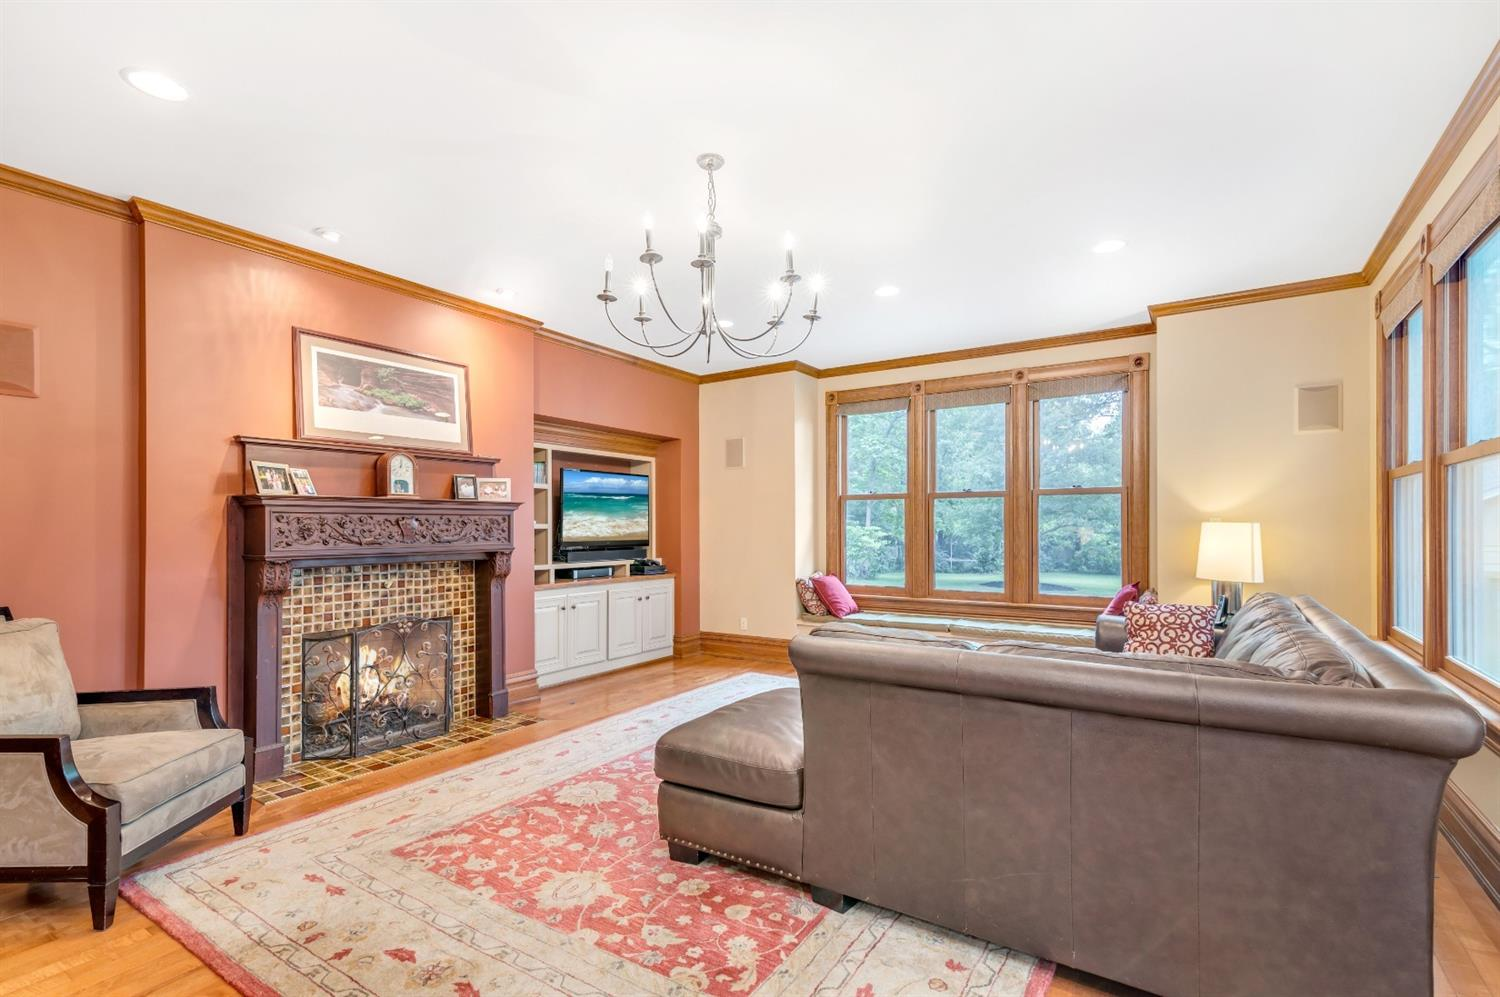 Located off the kitchen this light filled family room opens to a spacious deck and private yard.